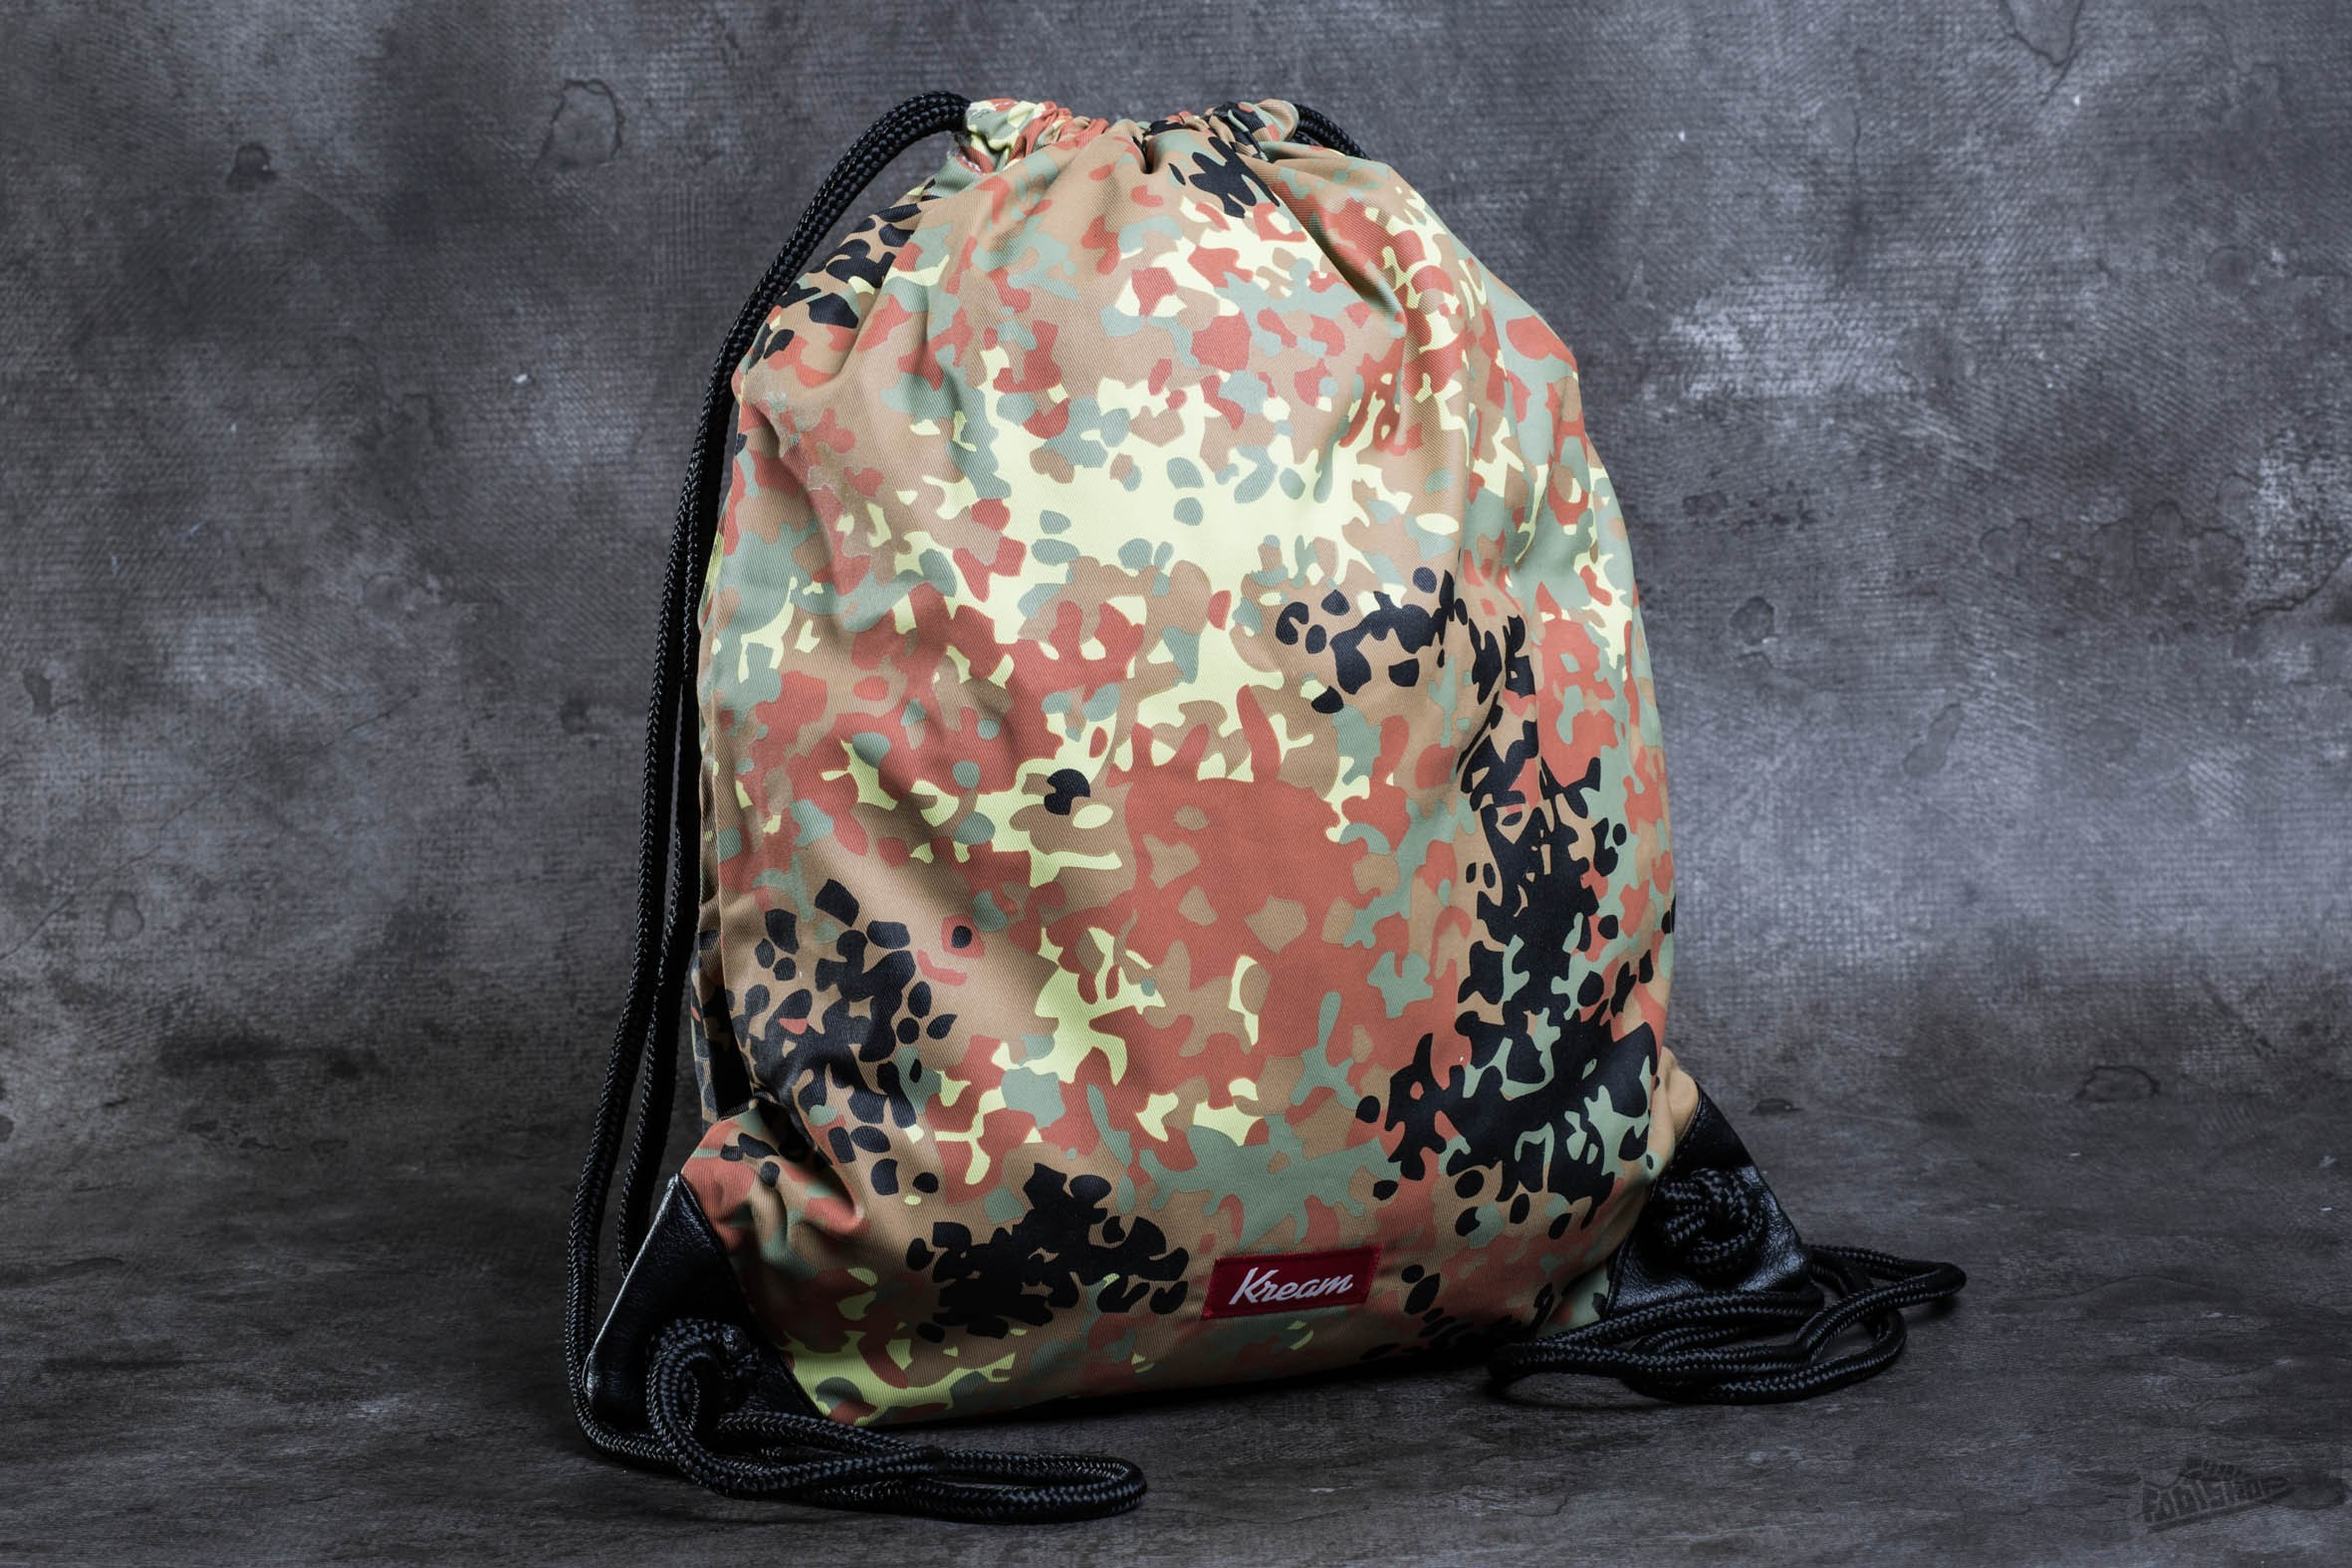 Kream Duck Down Bag Black/ Multi Colors - 9875